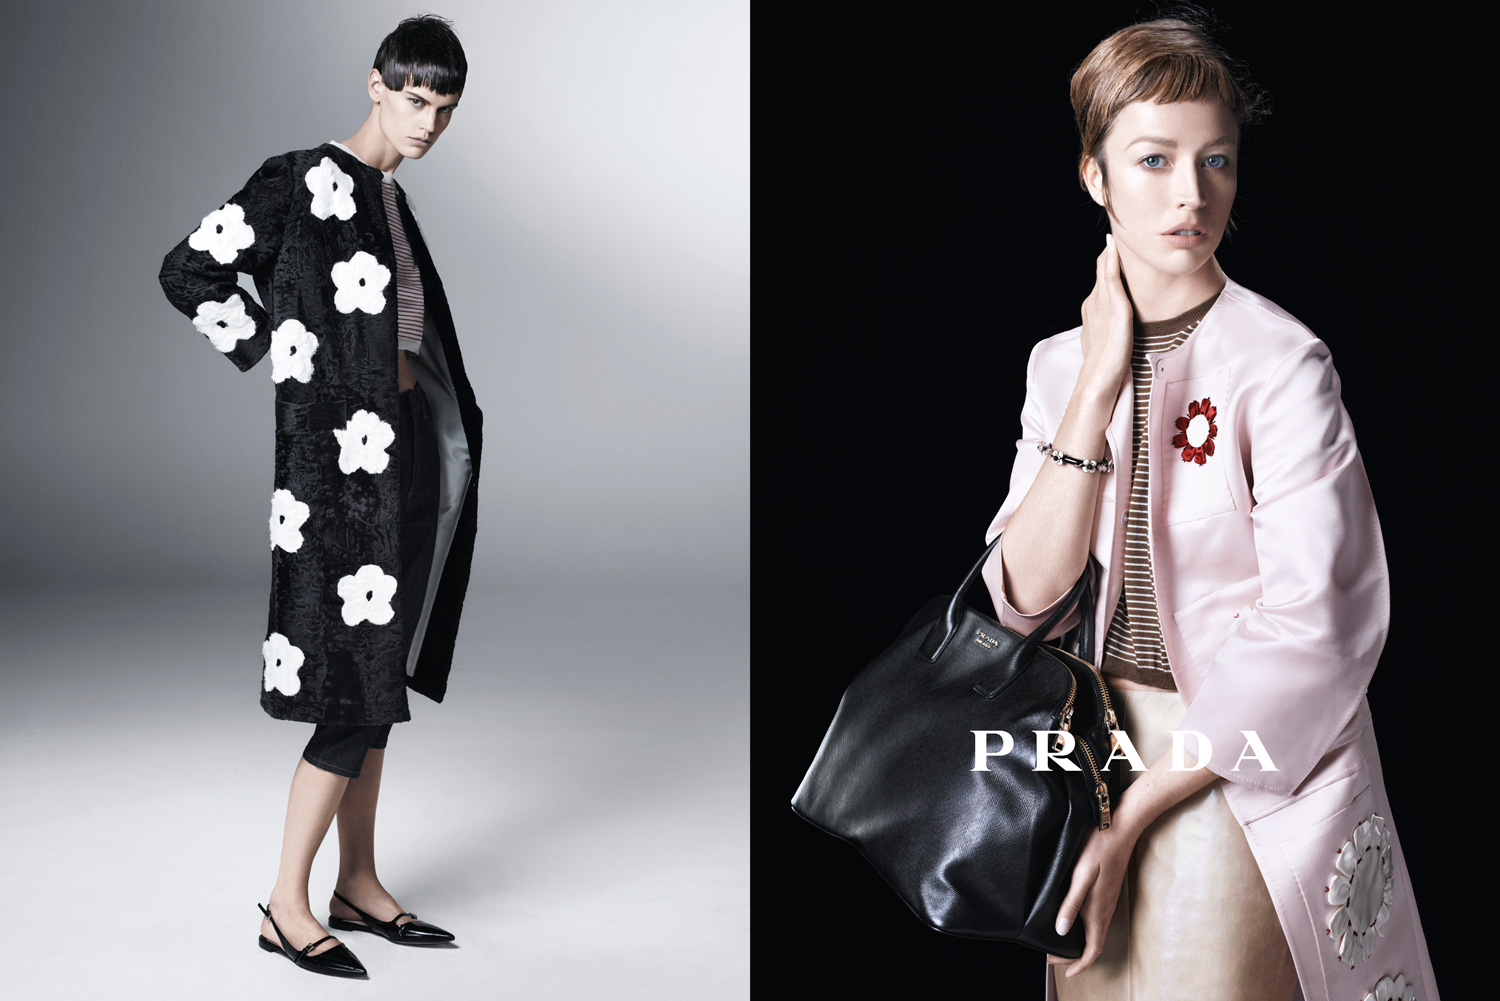 prada-women-spring-summer-2013-04